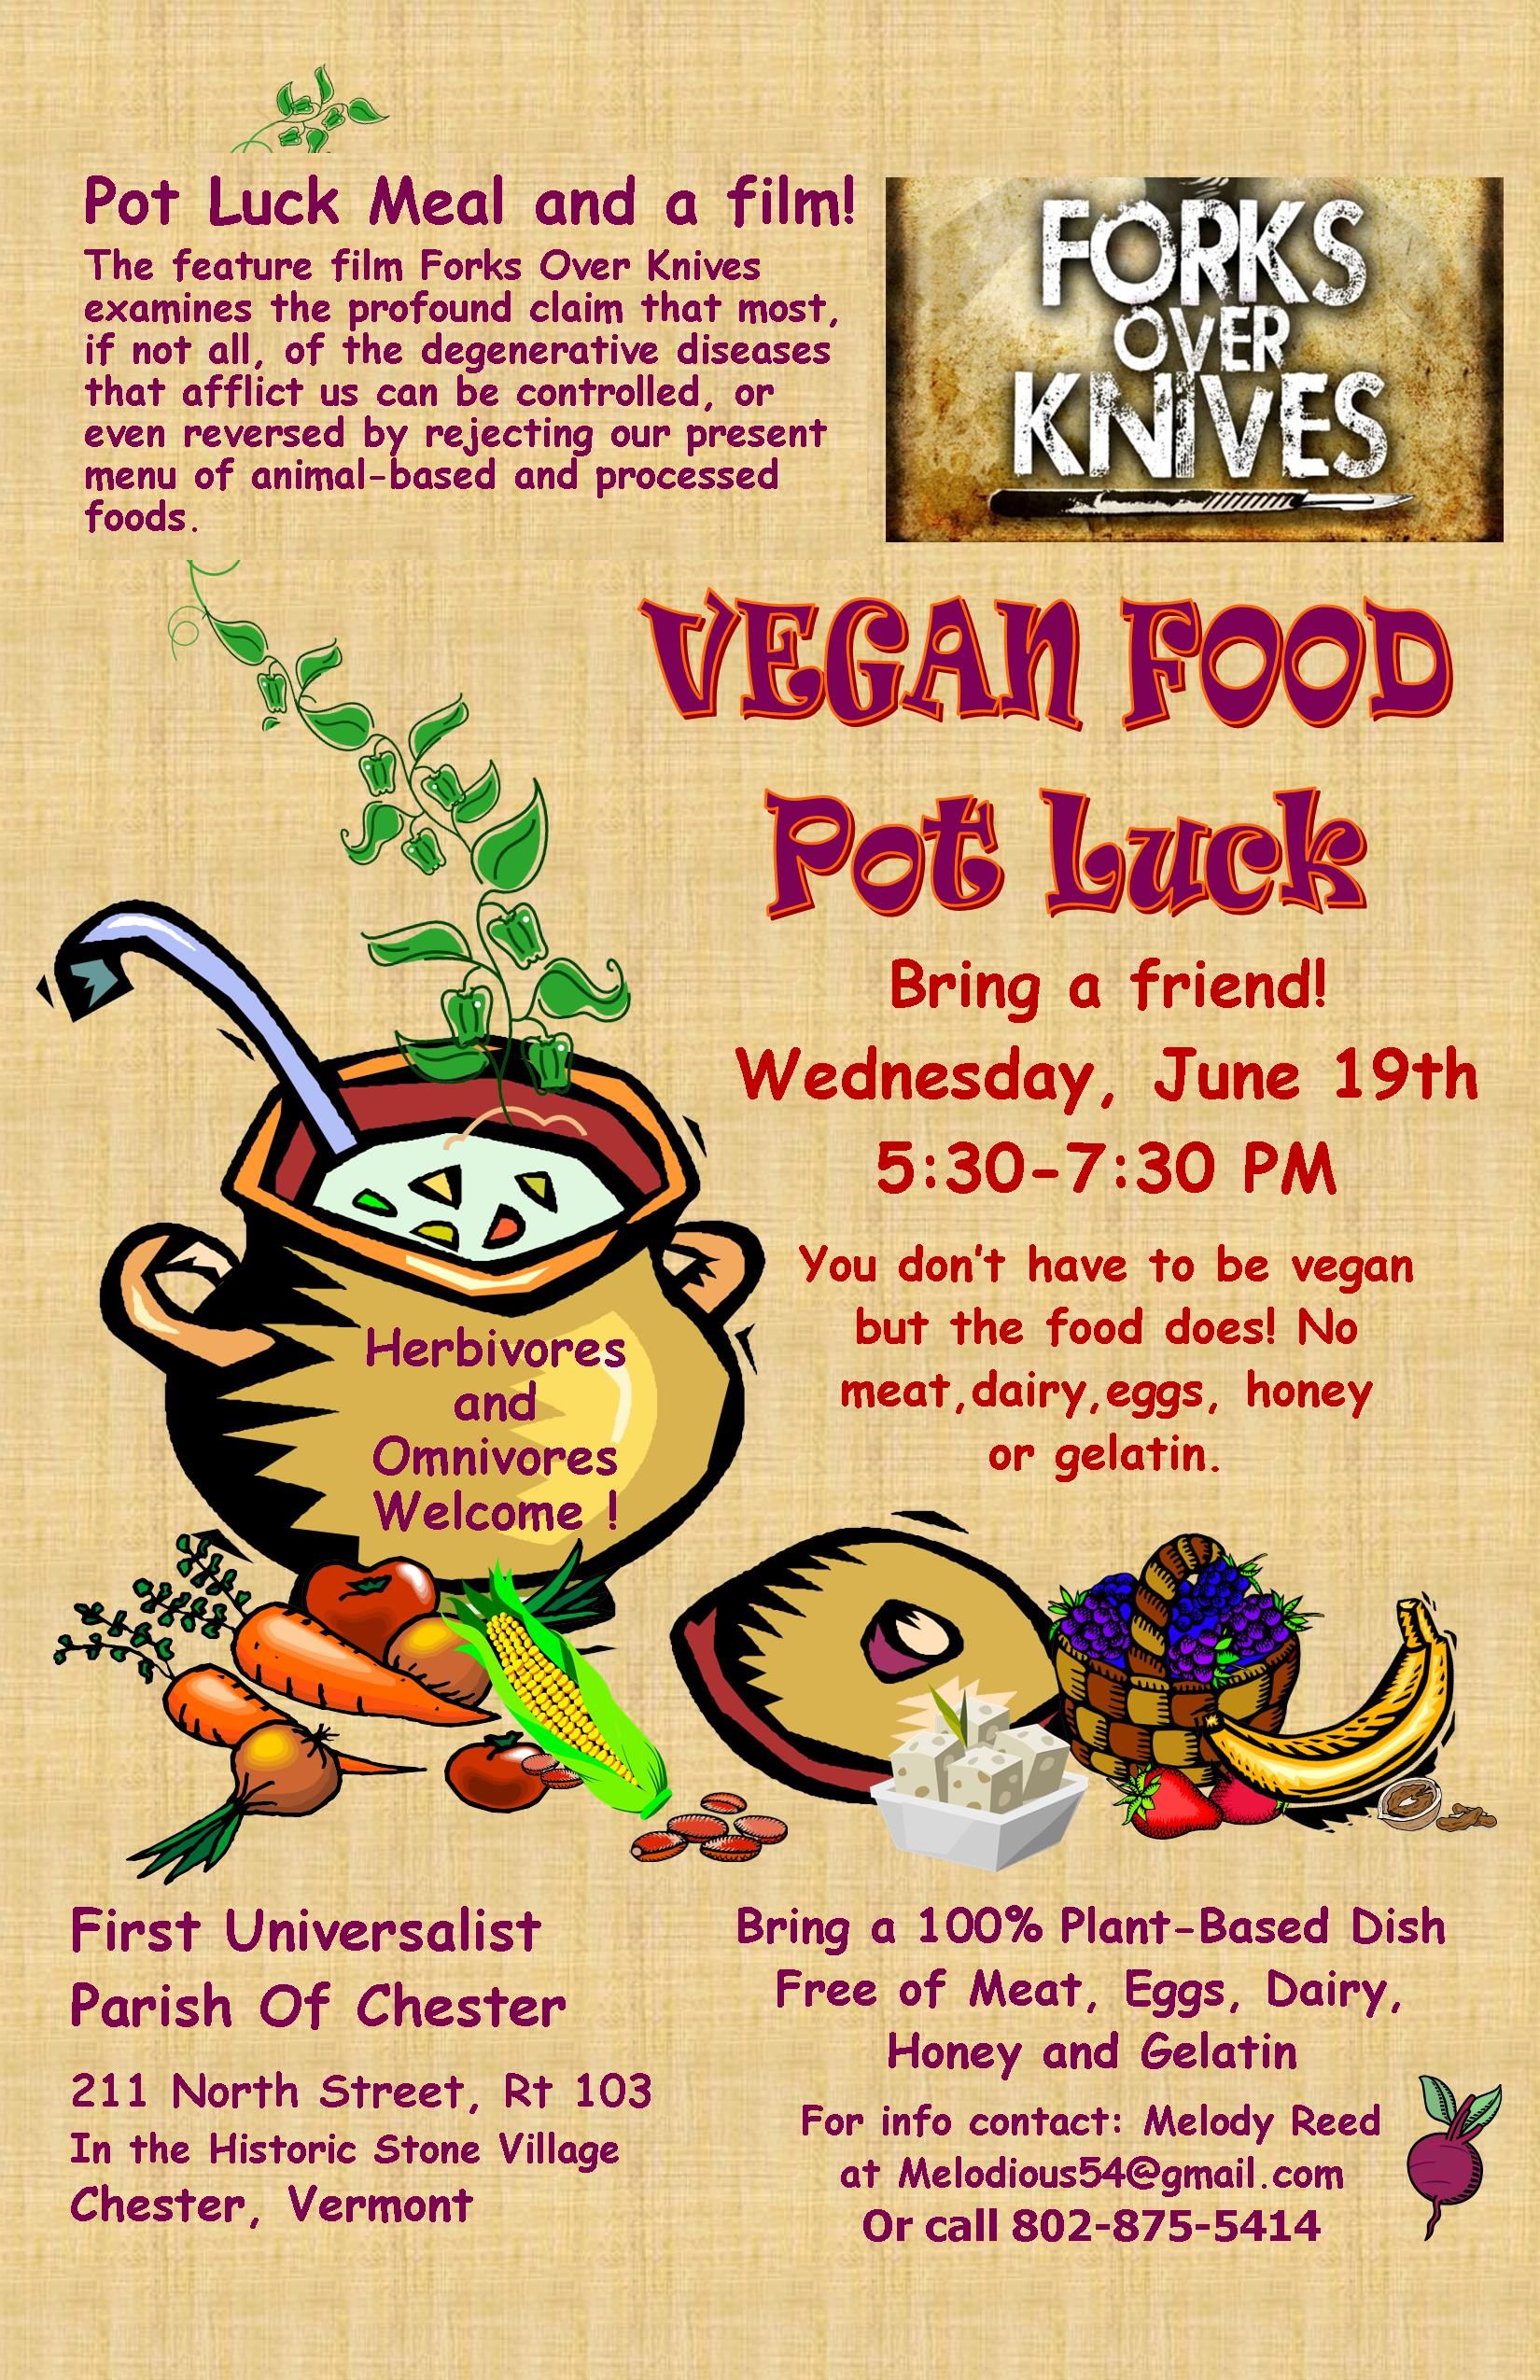 Vegan Pot Luck Poster June 19, 2019 (1).jpg